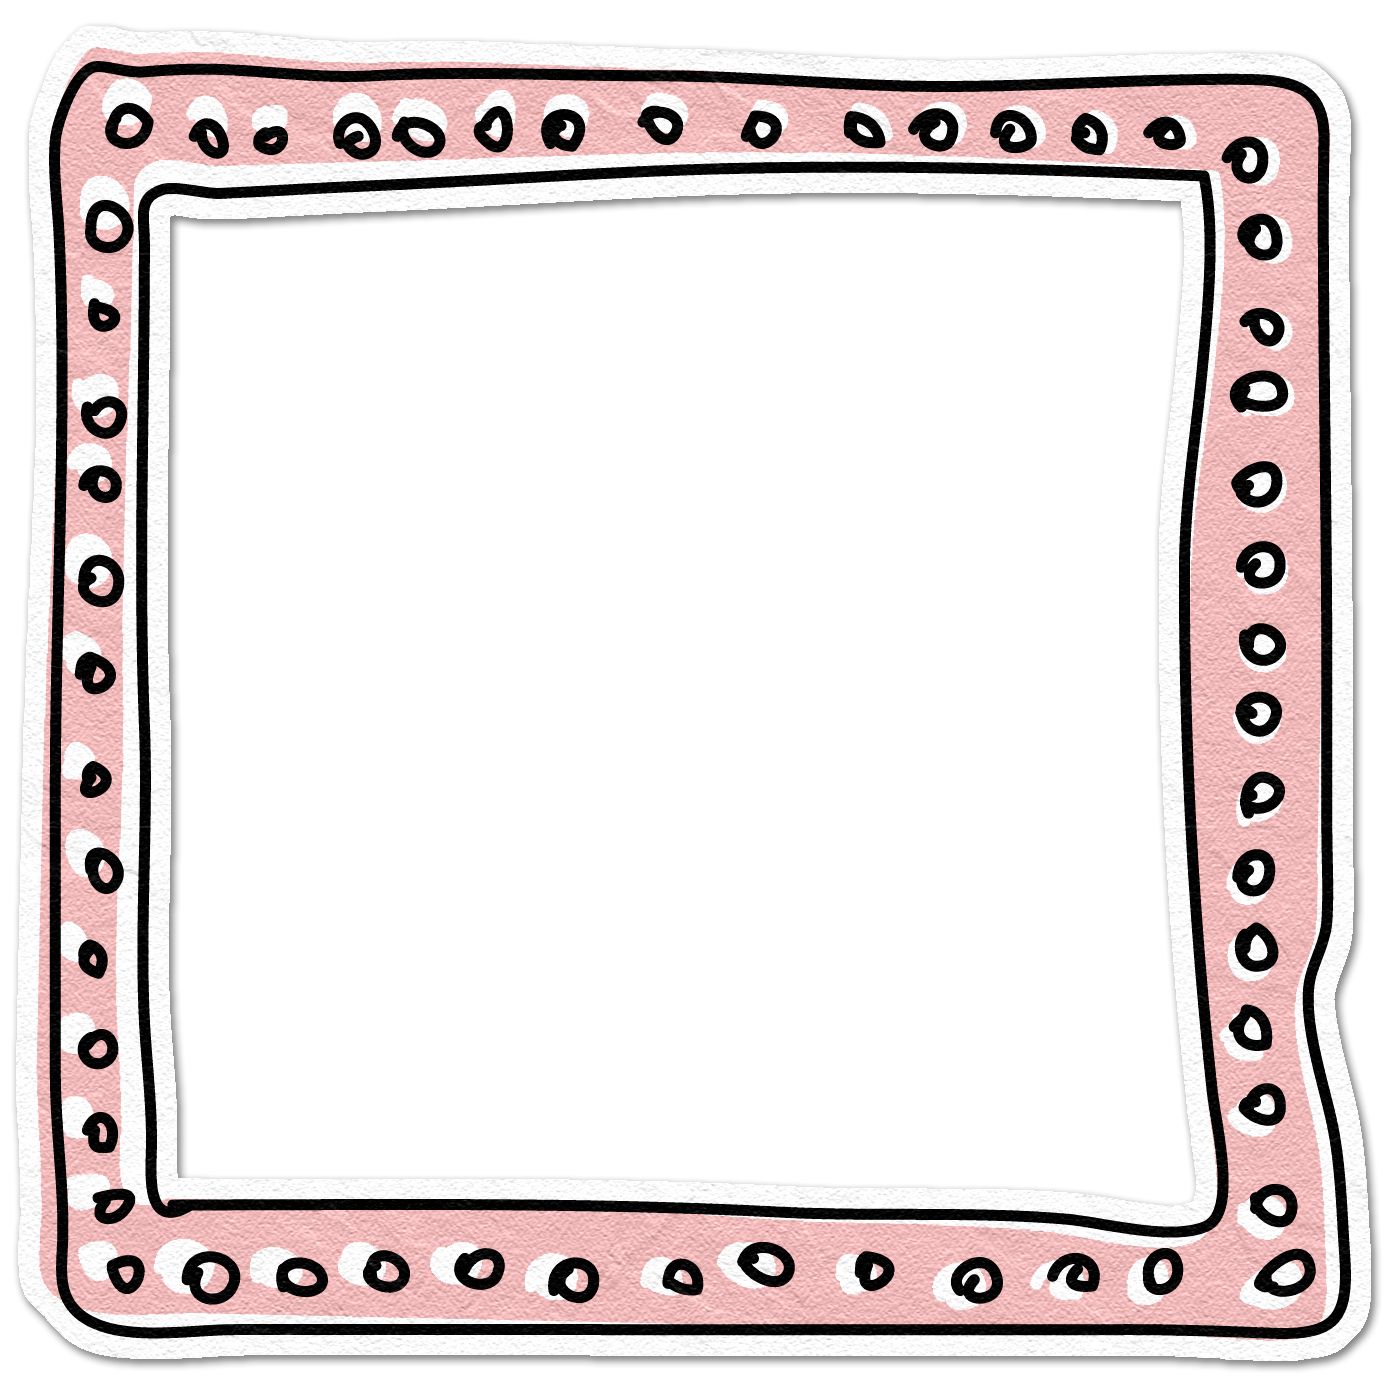 Yellow element doodledpinkframe jun. Doodle frame png graphic library stock